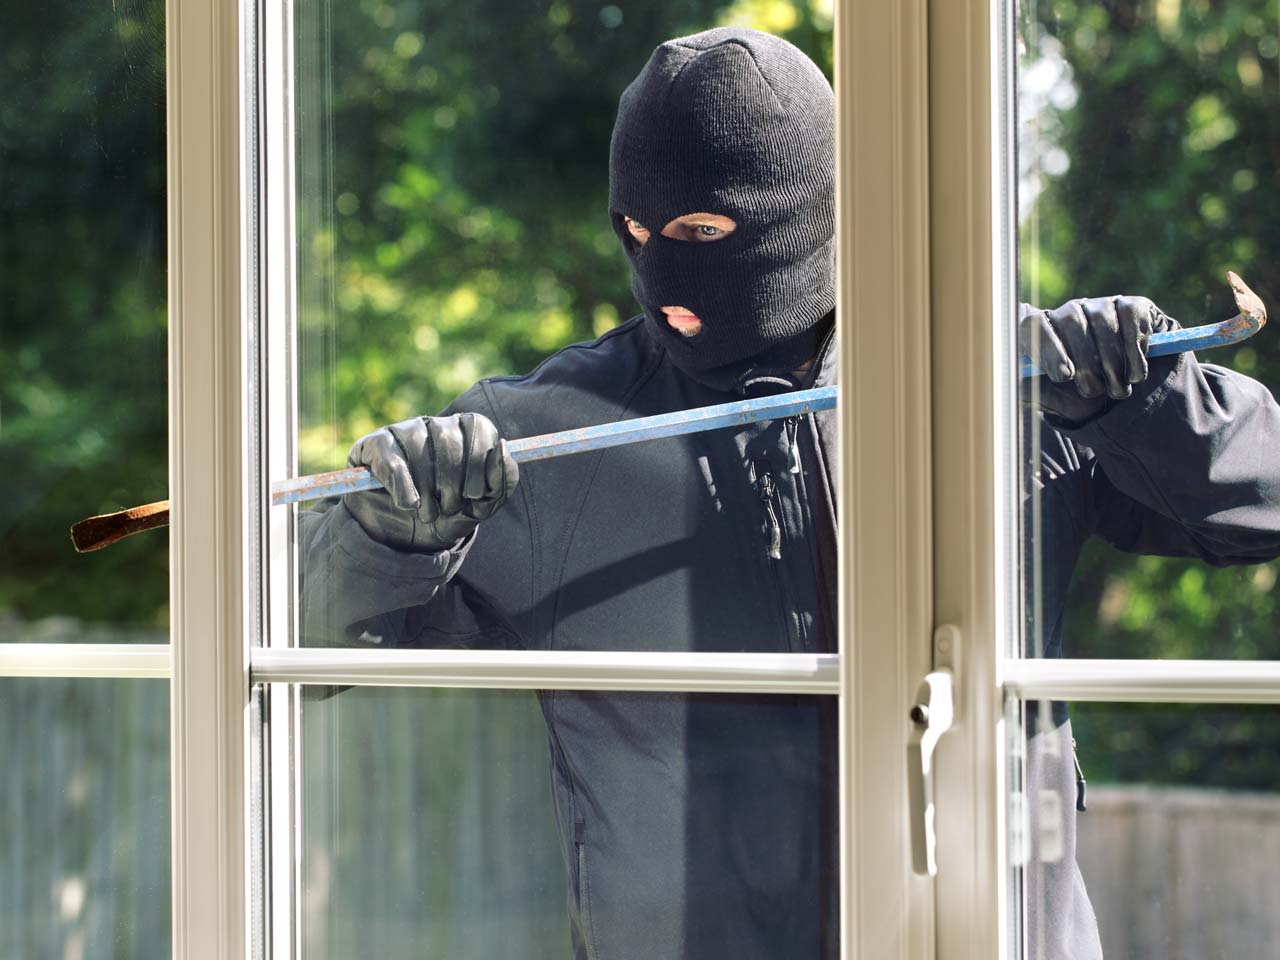 security window film protect break in burglary